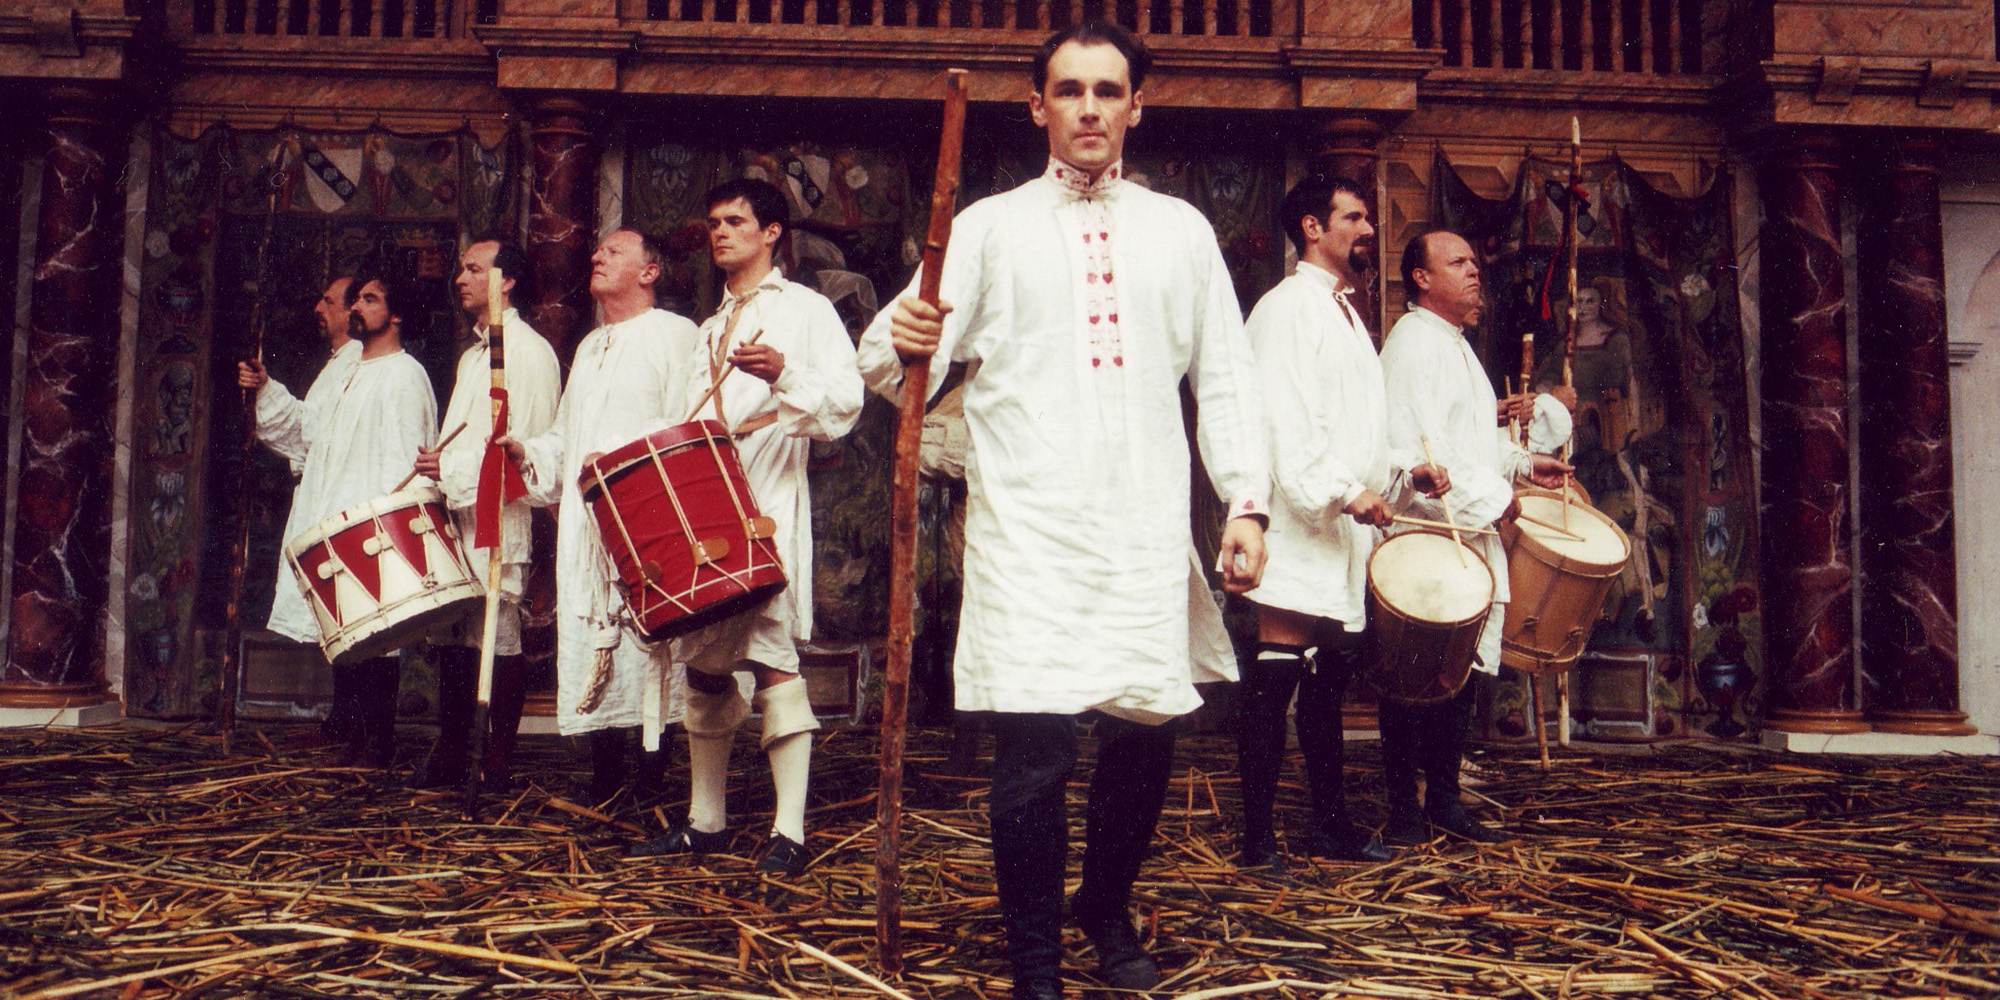 A group of actors wearing white tunics stand in a v-formation on a stage covered in straw.